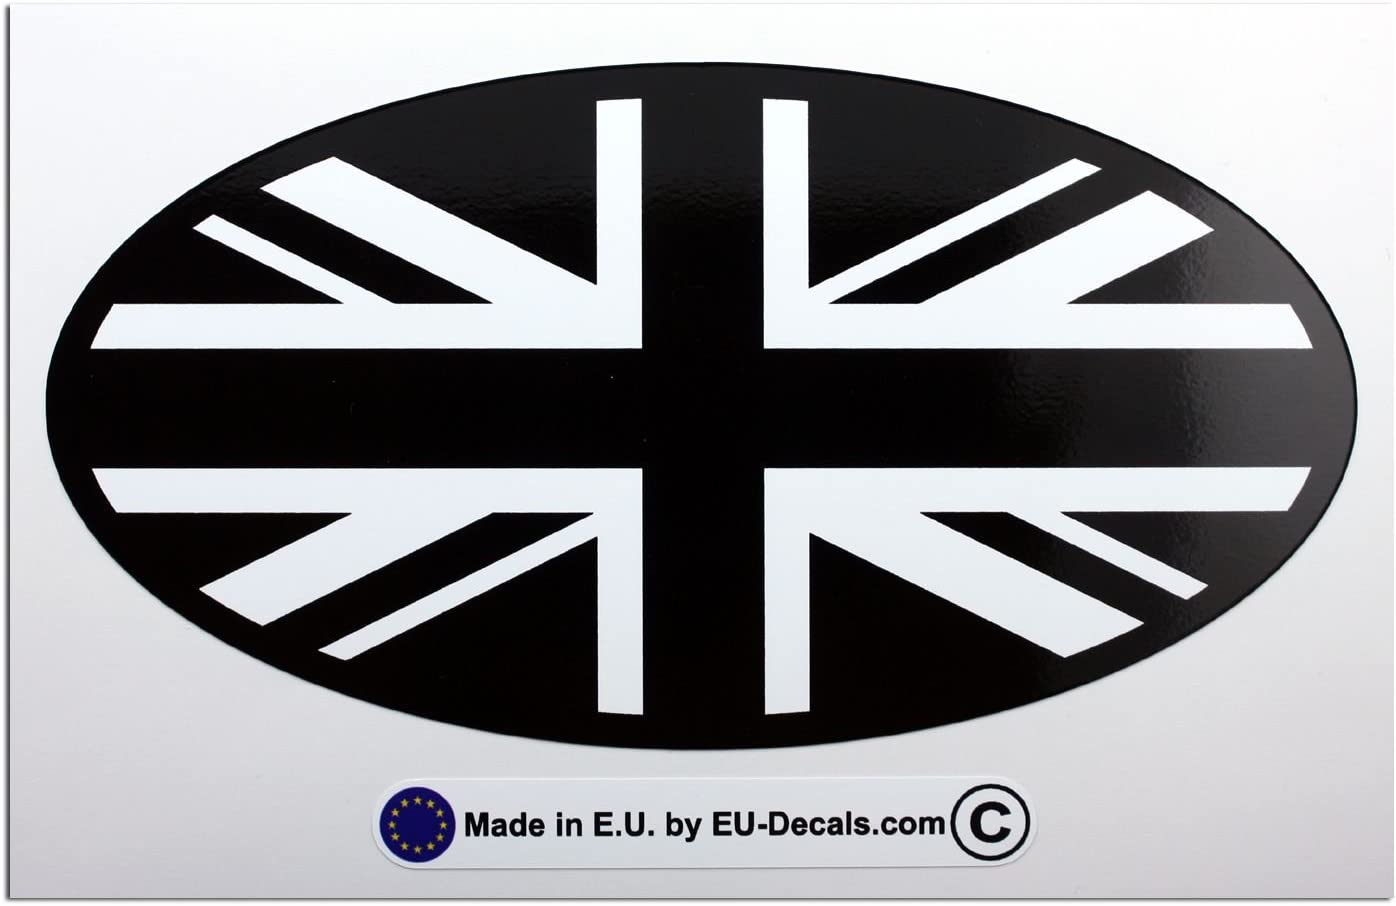 2 X 70mm 2.76 UK Union Jack flags Laminated Decal Sticker High Quality by MioVespa collection